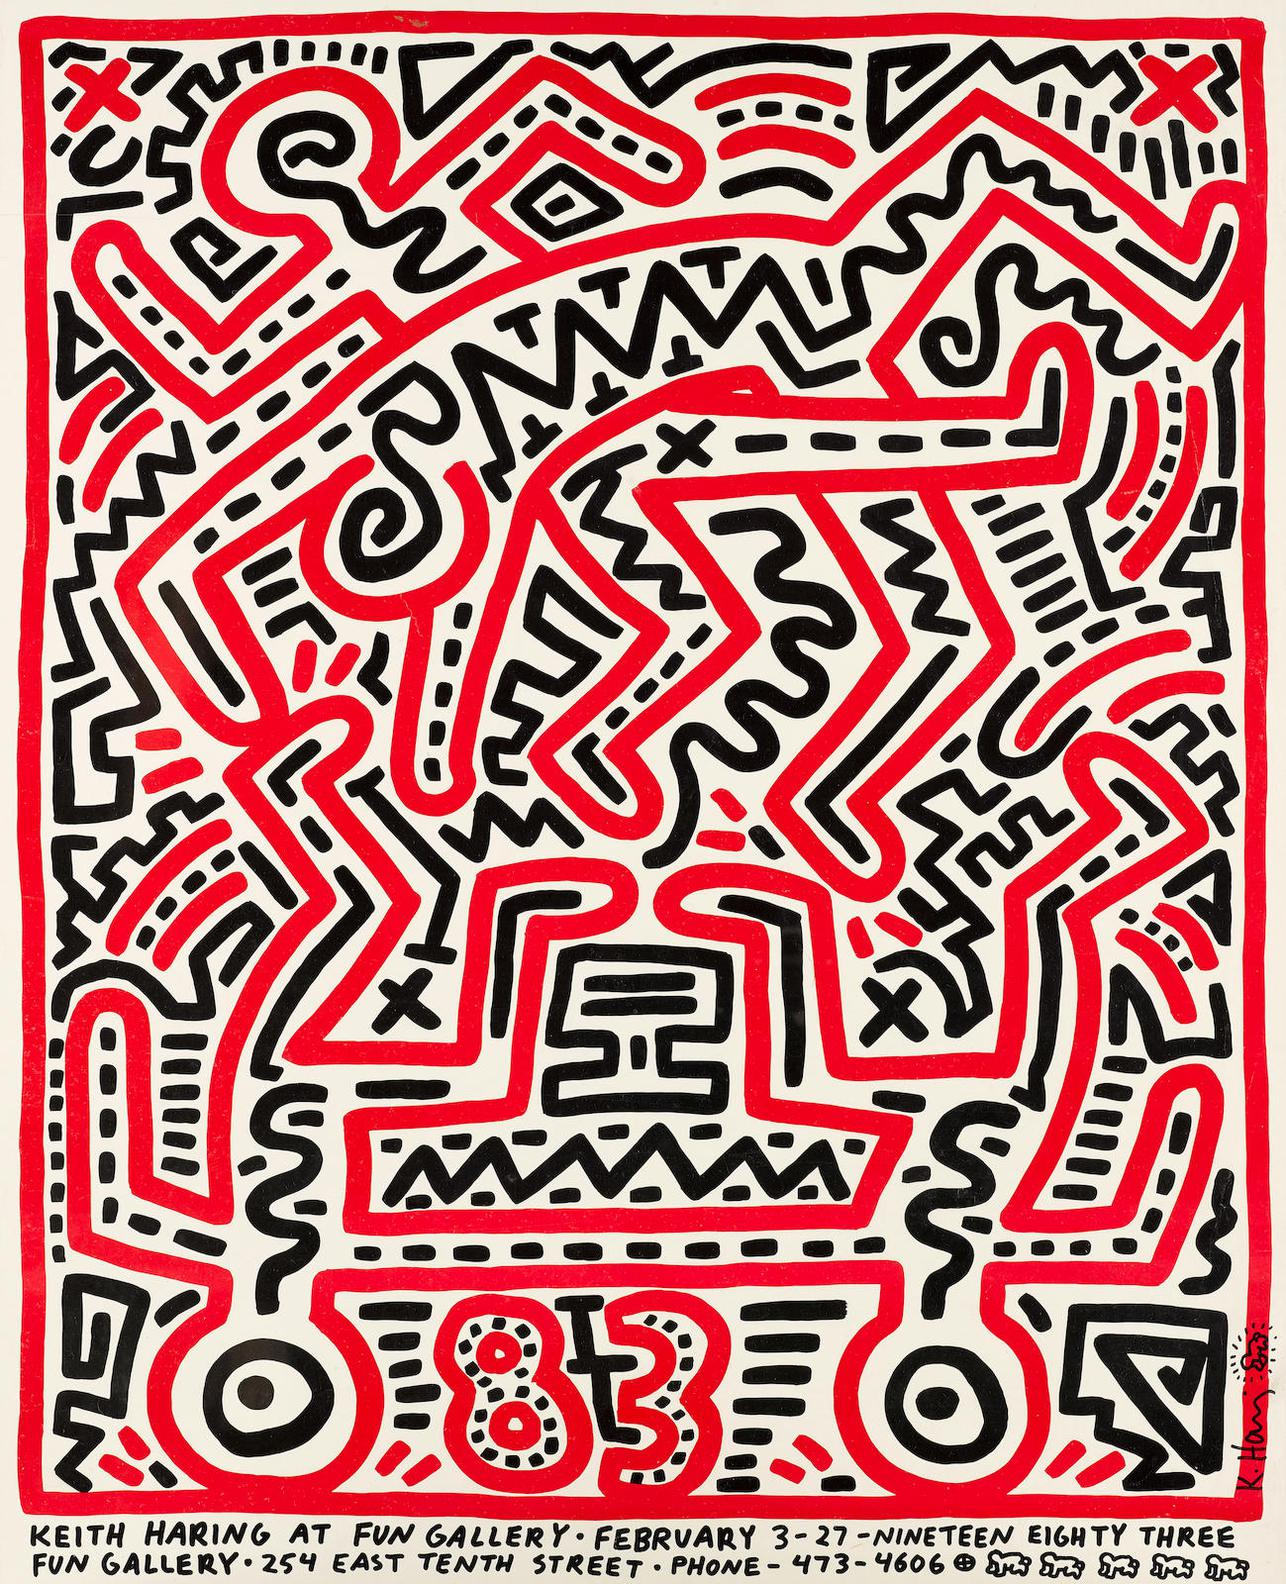 Keith Haring-Fun Gallery Exhibition Poster-1983